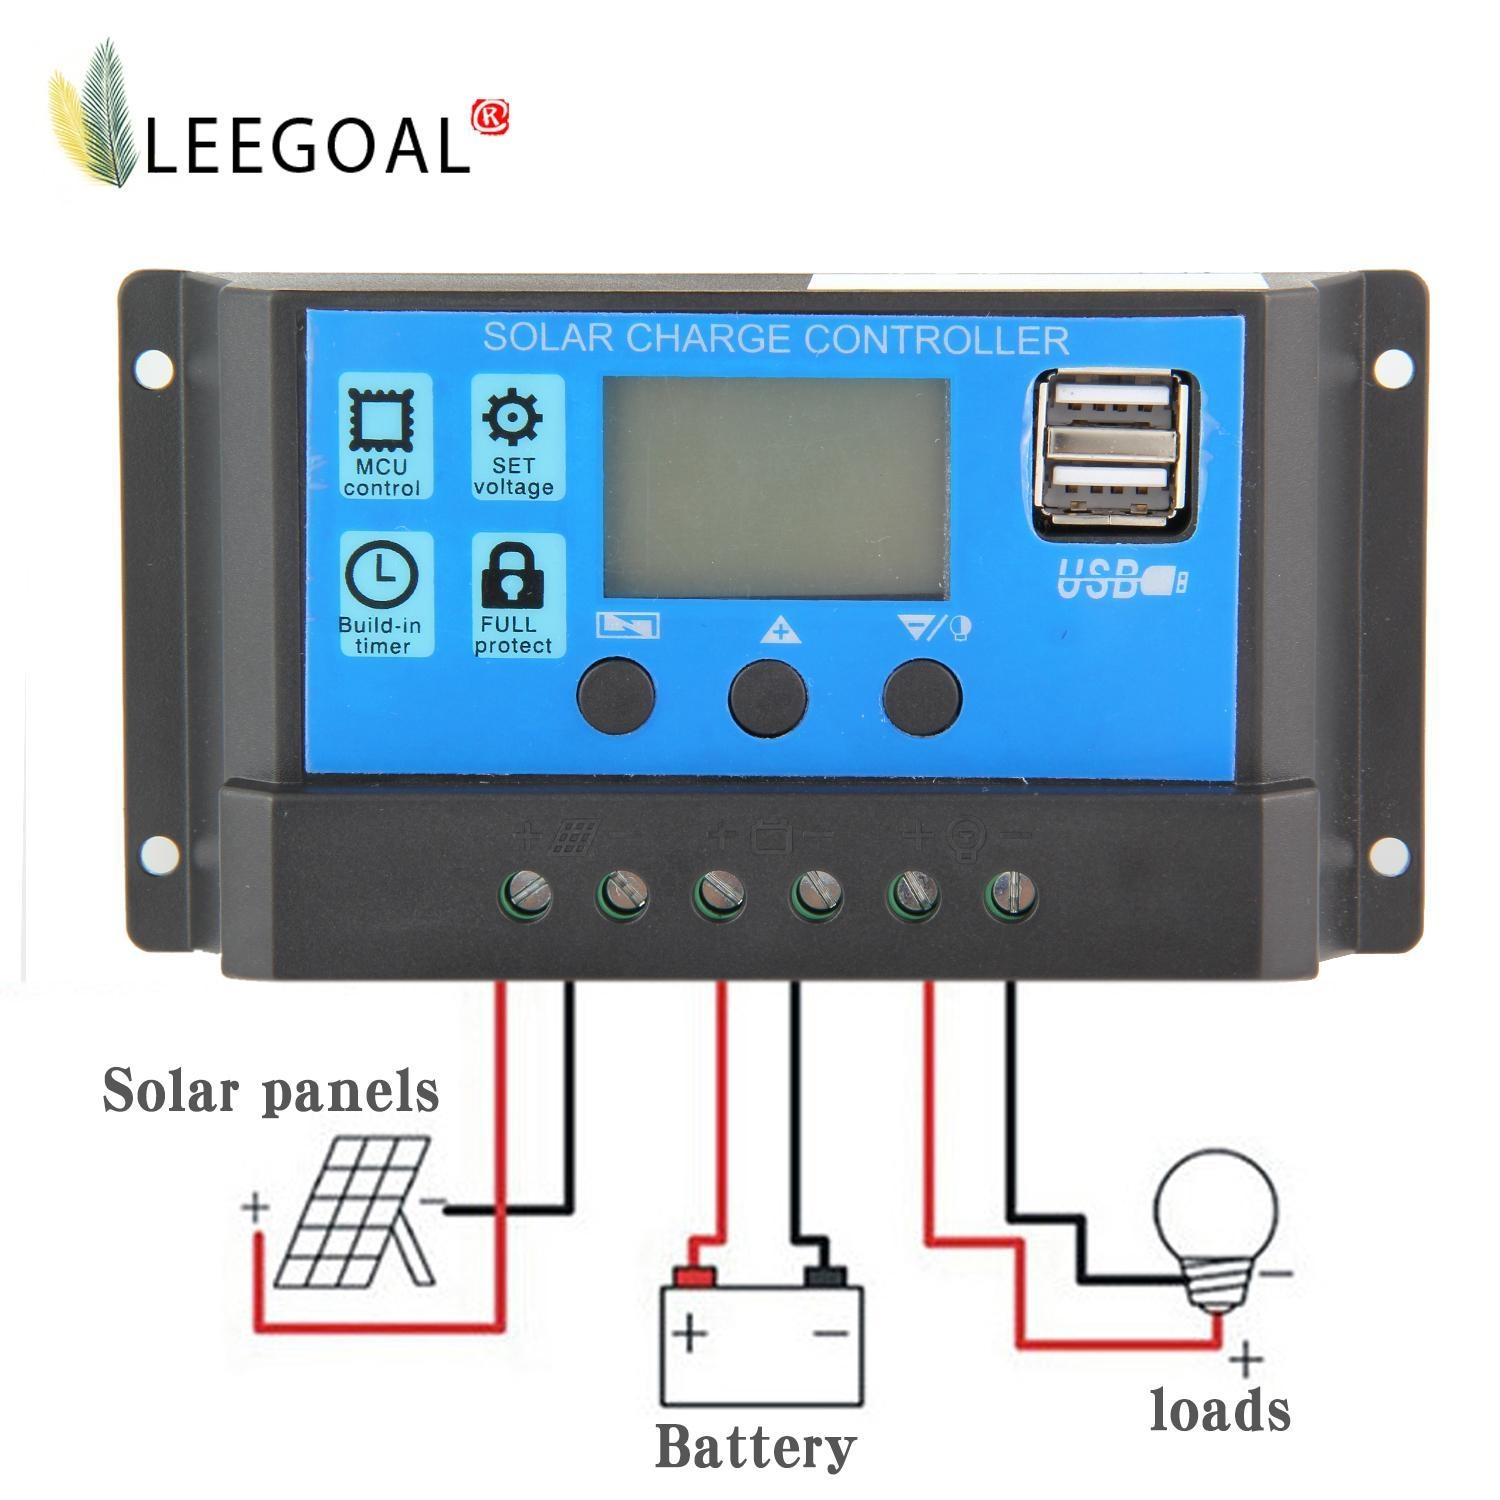 Buy Louis Will 10a Solar Charger Controller Panel Battery Circuit Consumer To The Charge Regulator Plus And Minus Reverse Order Applies When Deinstalling An Improper Sequence Can Damage